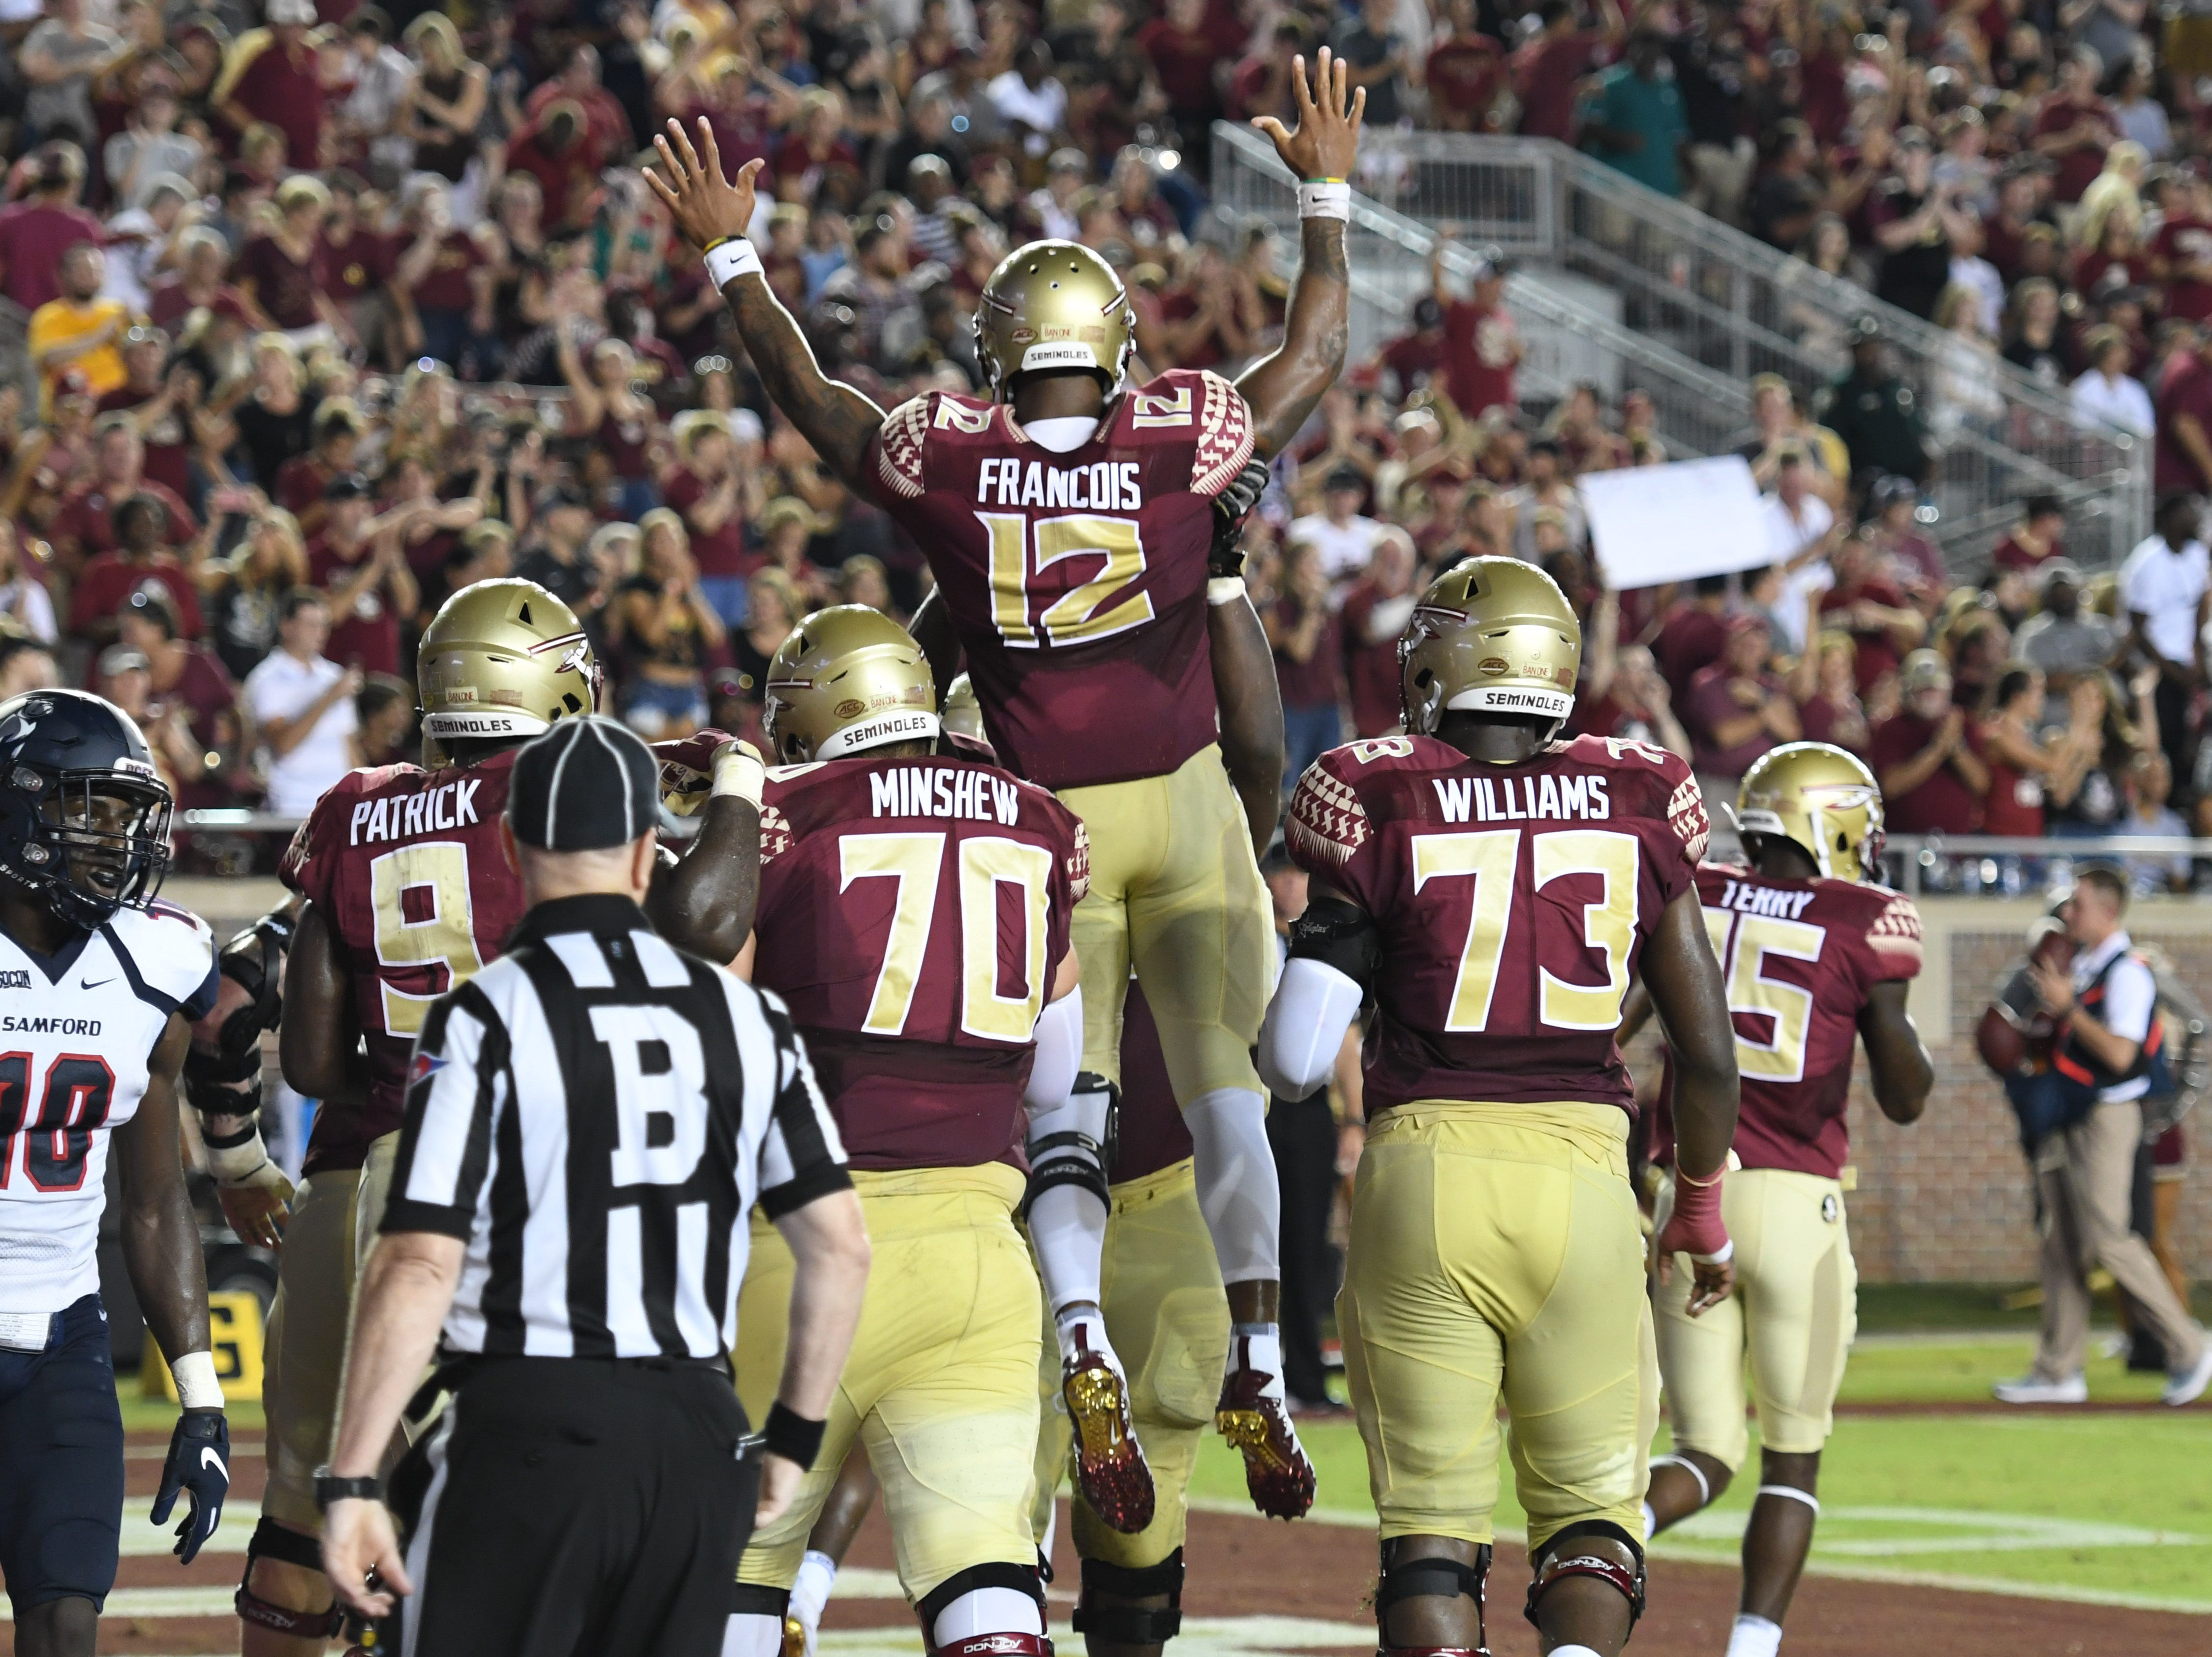 FSU redshirt junior Deondre Francois (12) celebrating his touchdown run with his teammates during the second quarter of FSU's matchup against Samford on Saturday night at Doak Campbell Stadium.